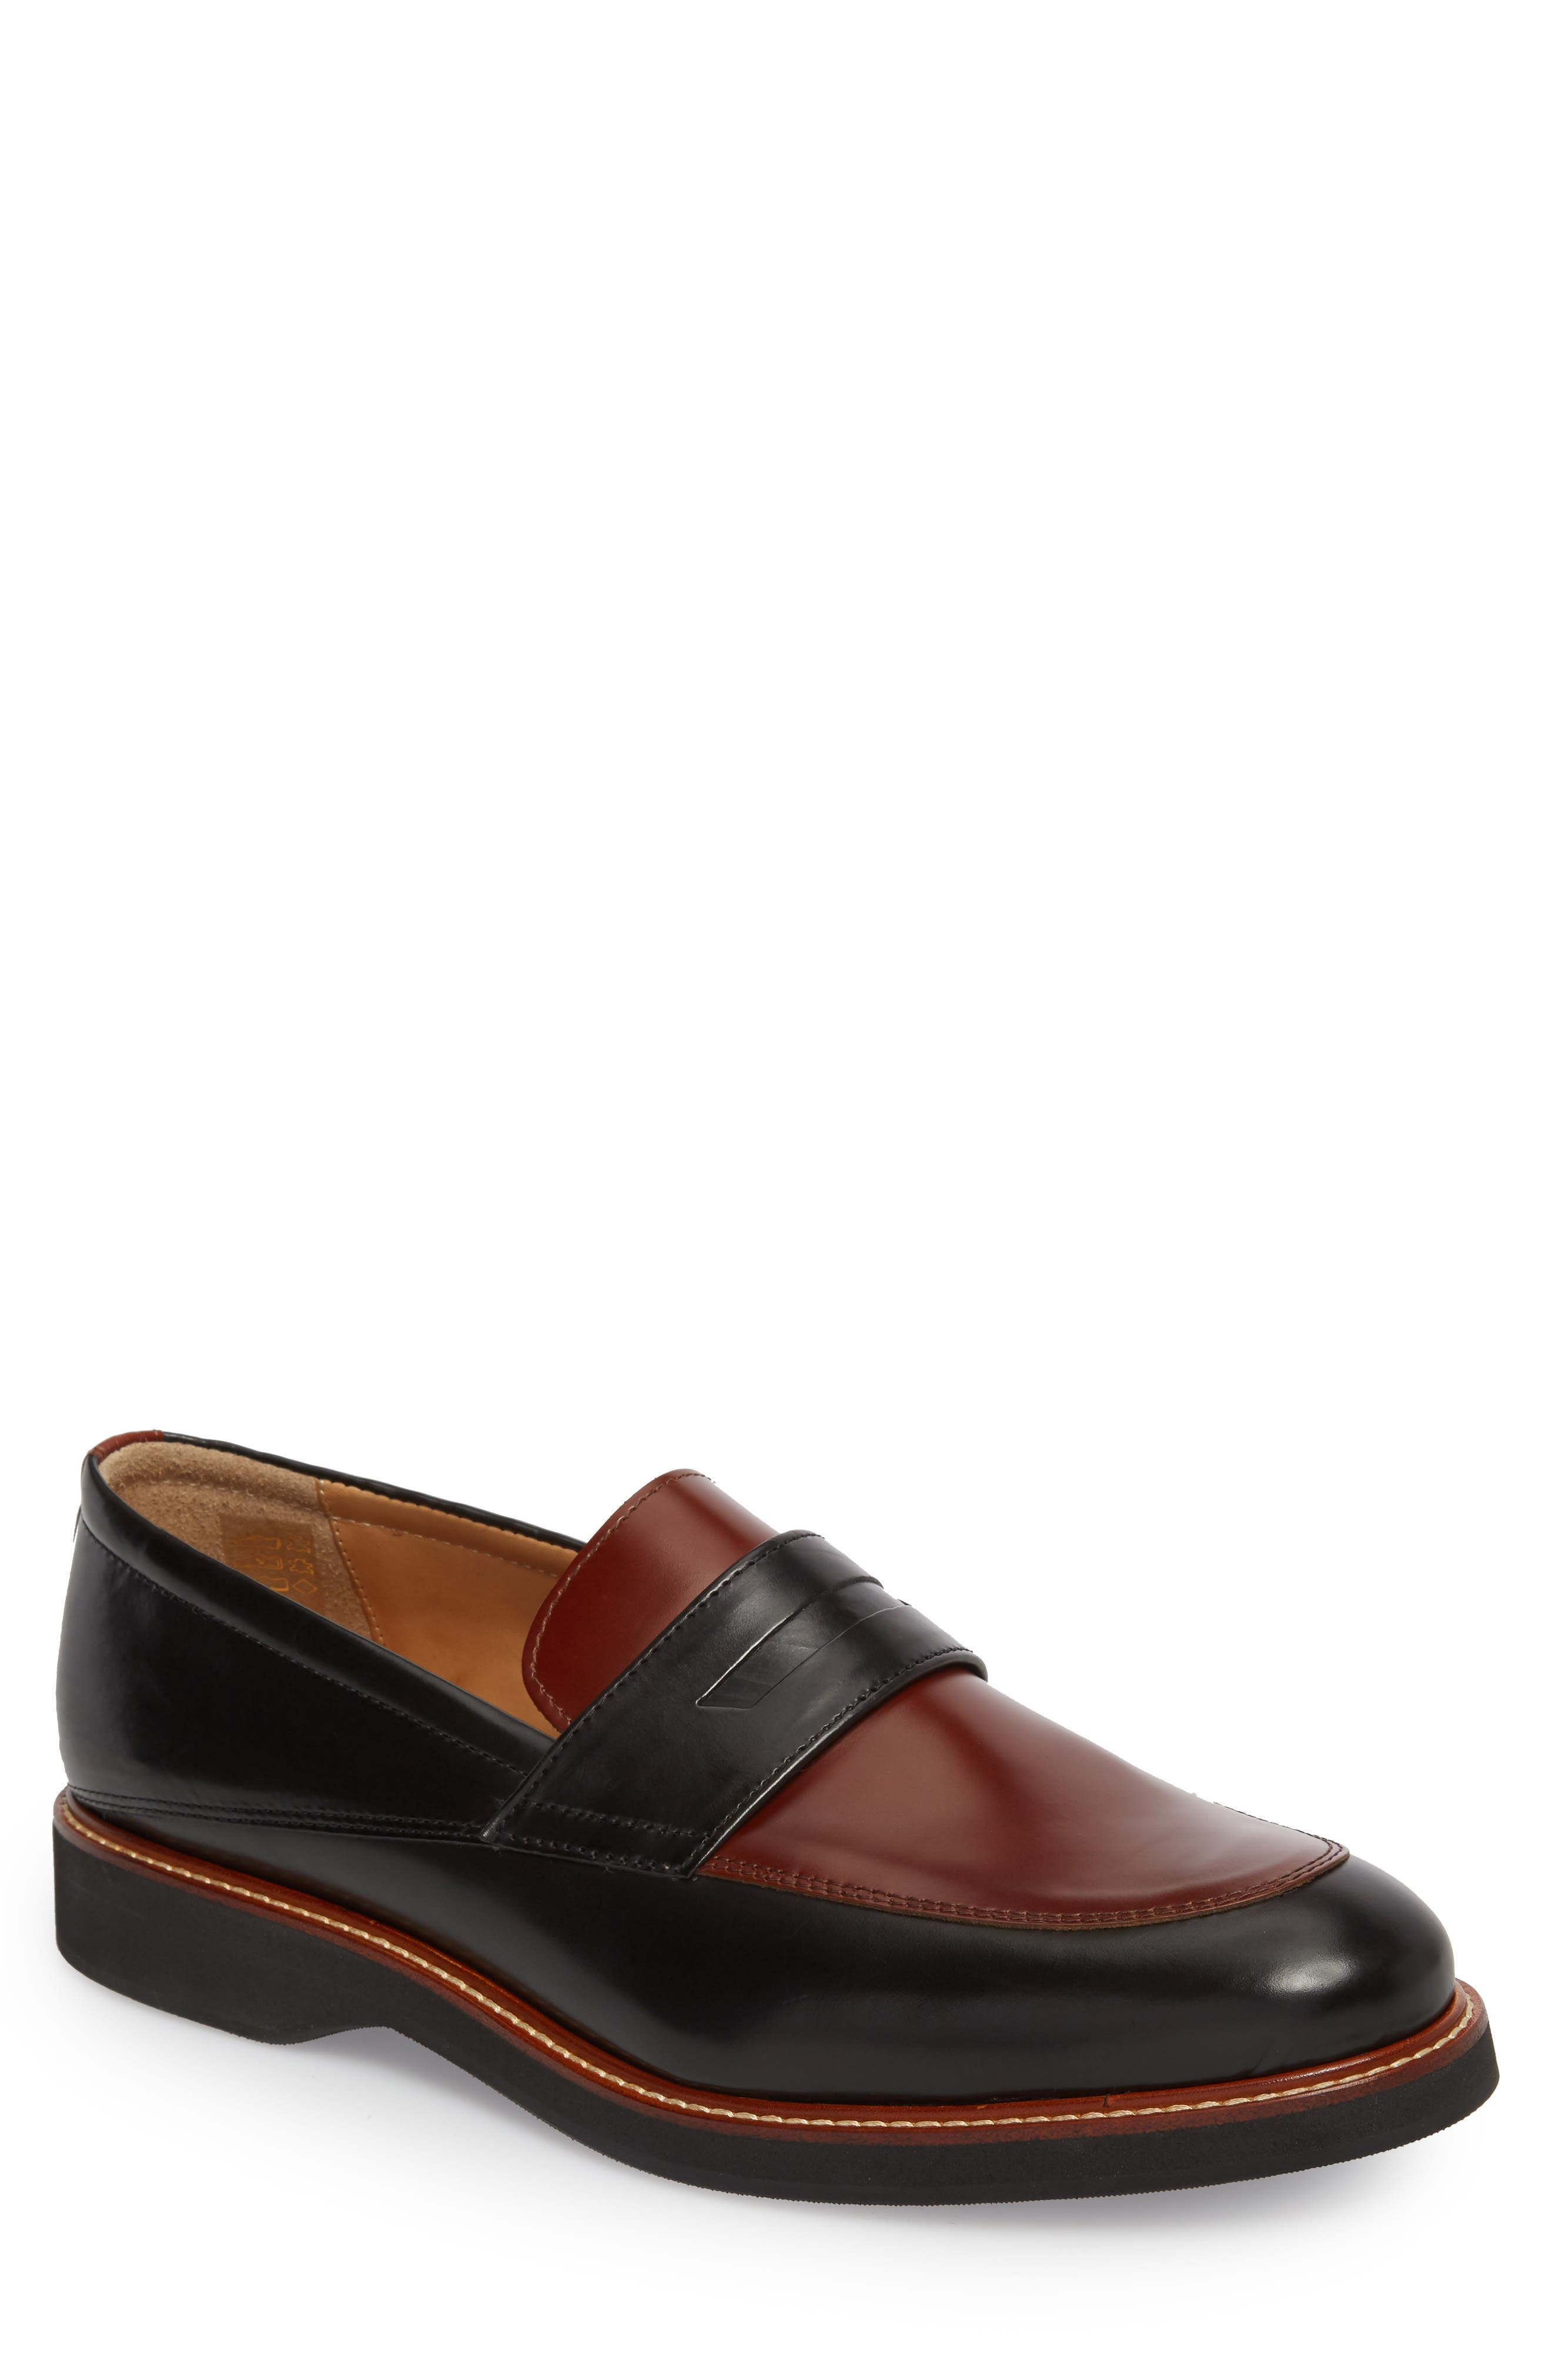 Marcus Penny Loafer,                         Main,                         color, 010